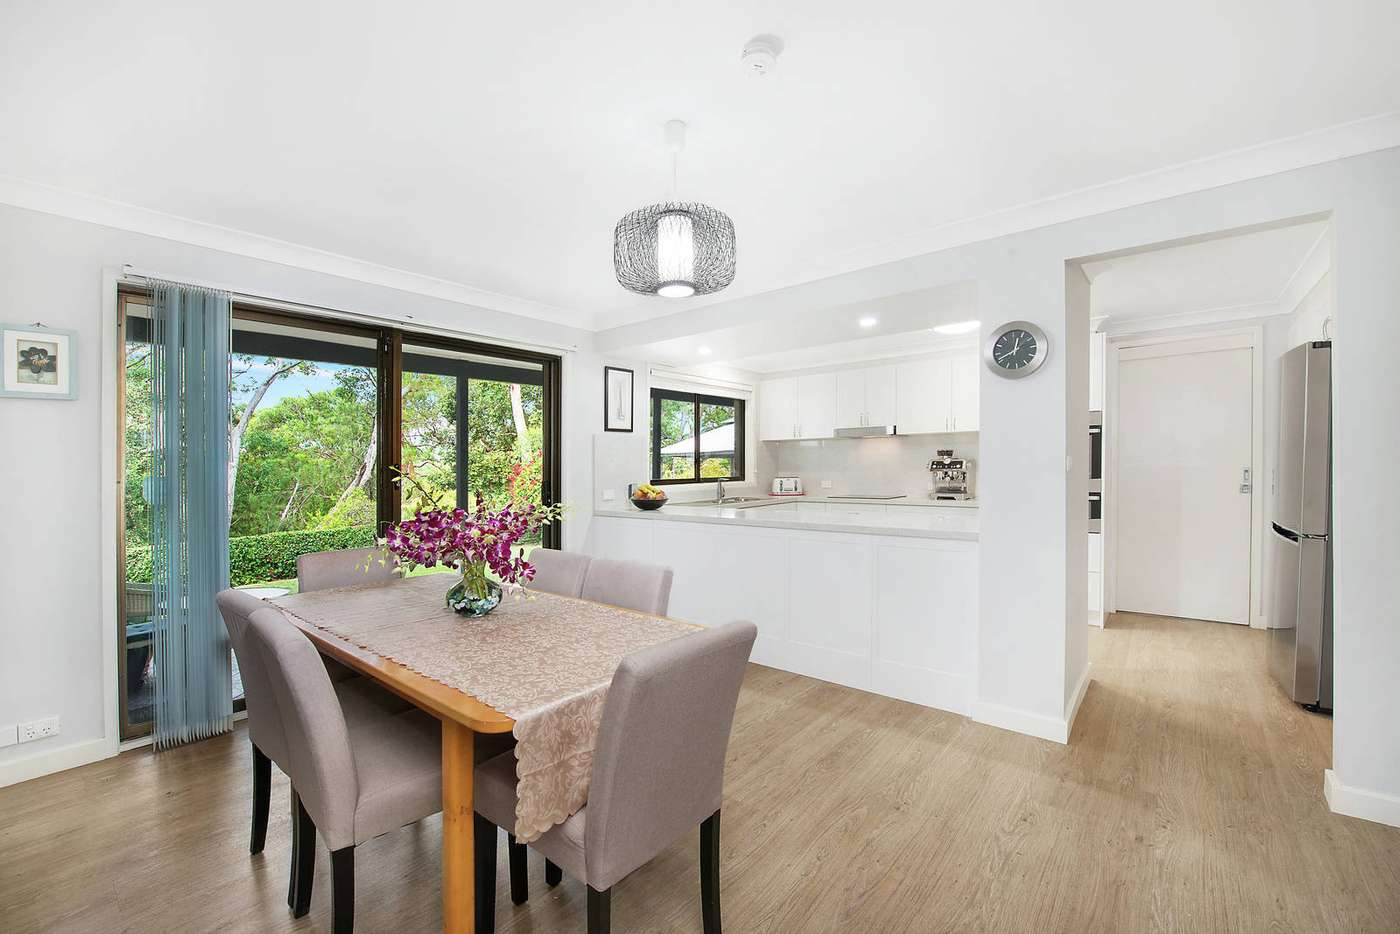 Fifth view of Homely house listing, 18 Russell Crescent, Westleigh NSW 2120